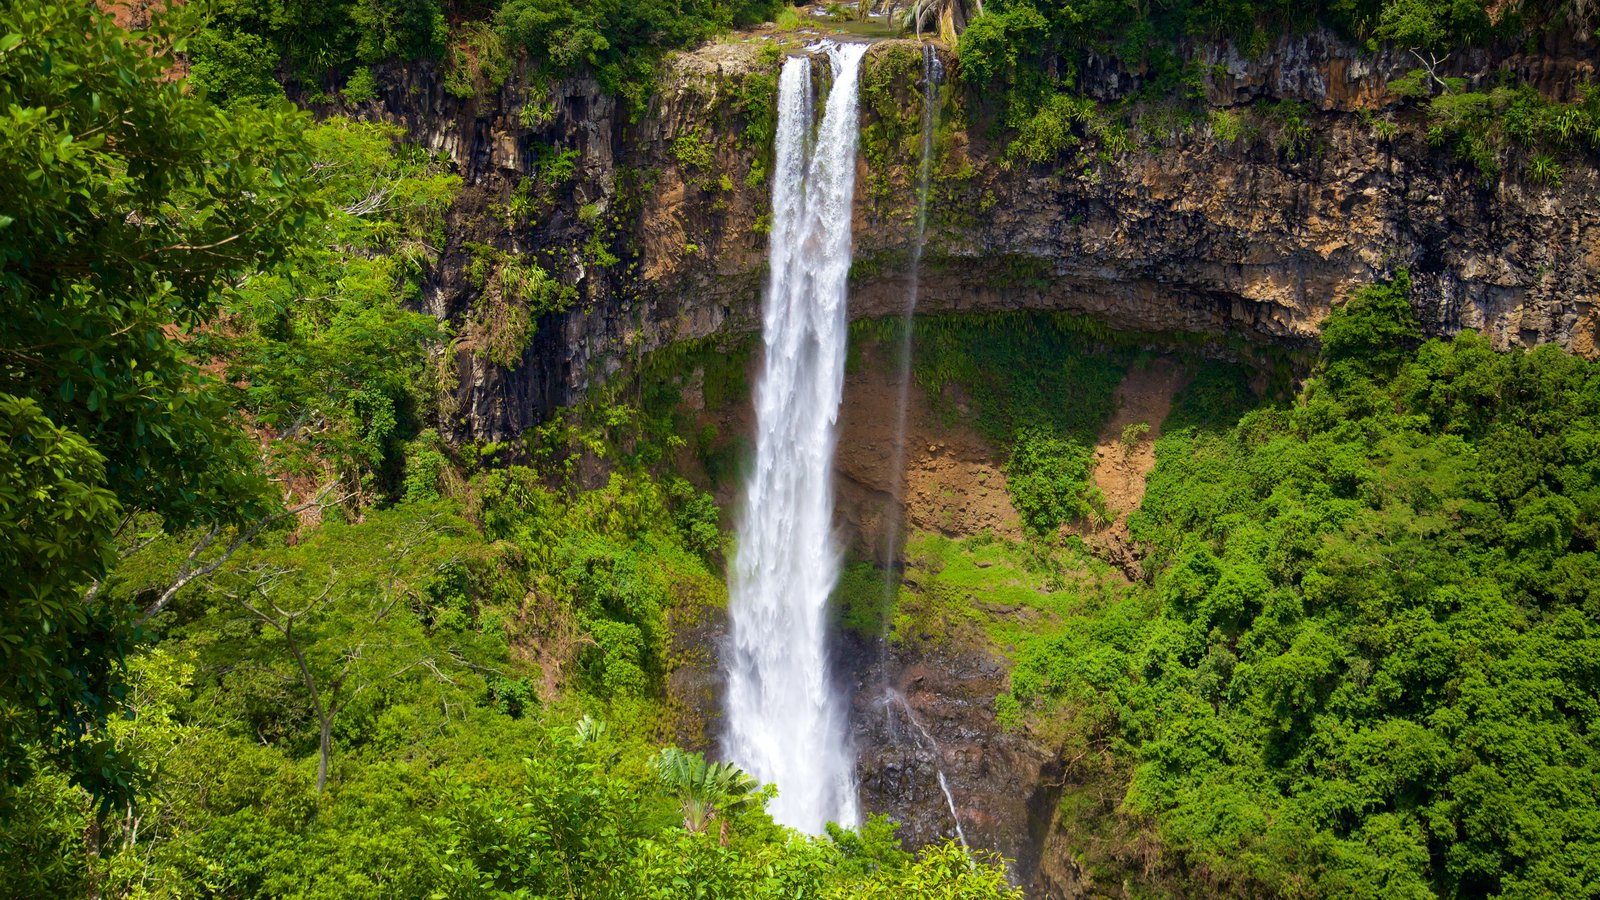 Black River Gorges National Park which includes a waterfall and rainforest